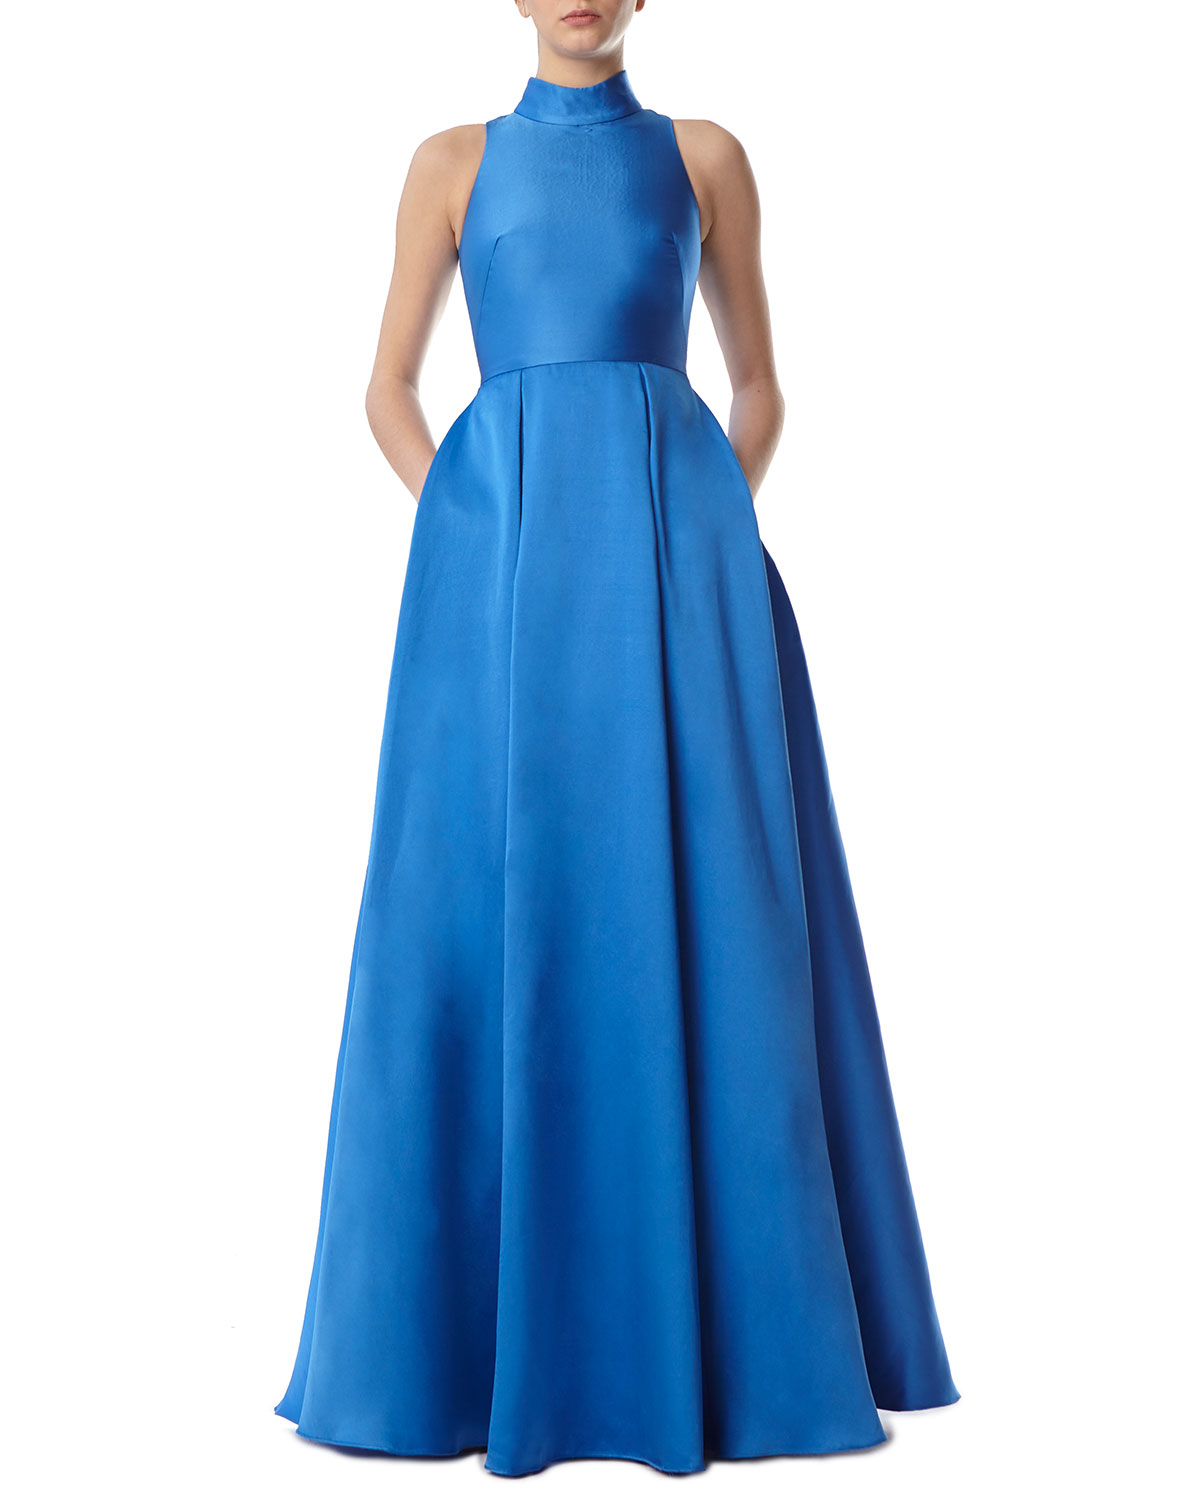 Ball Gown Dress w/ High Collar & Pockets